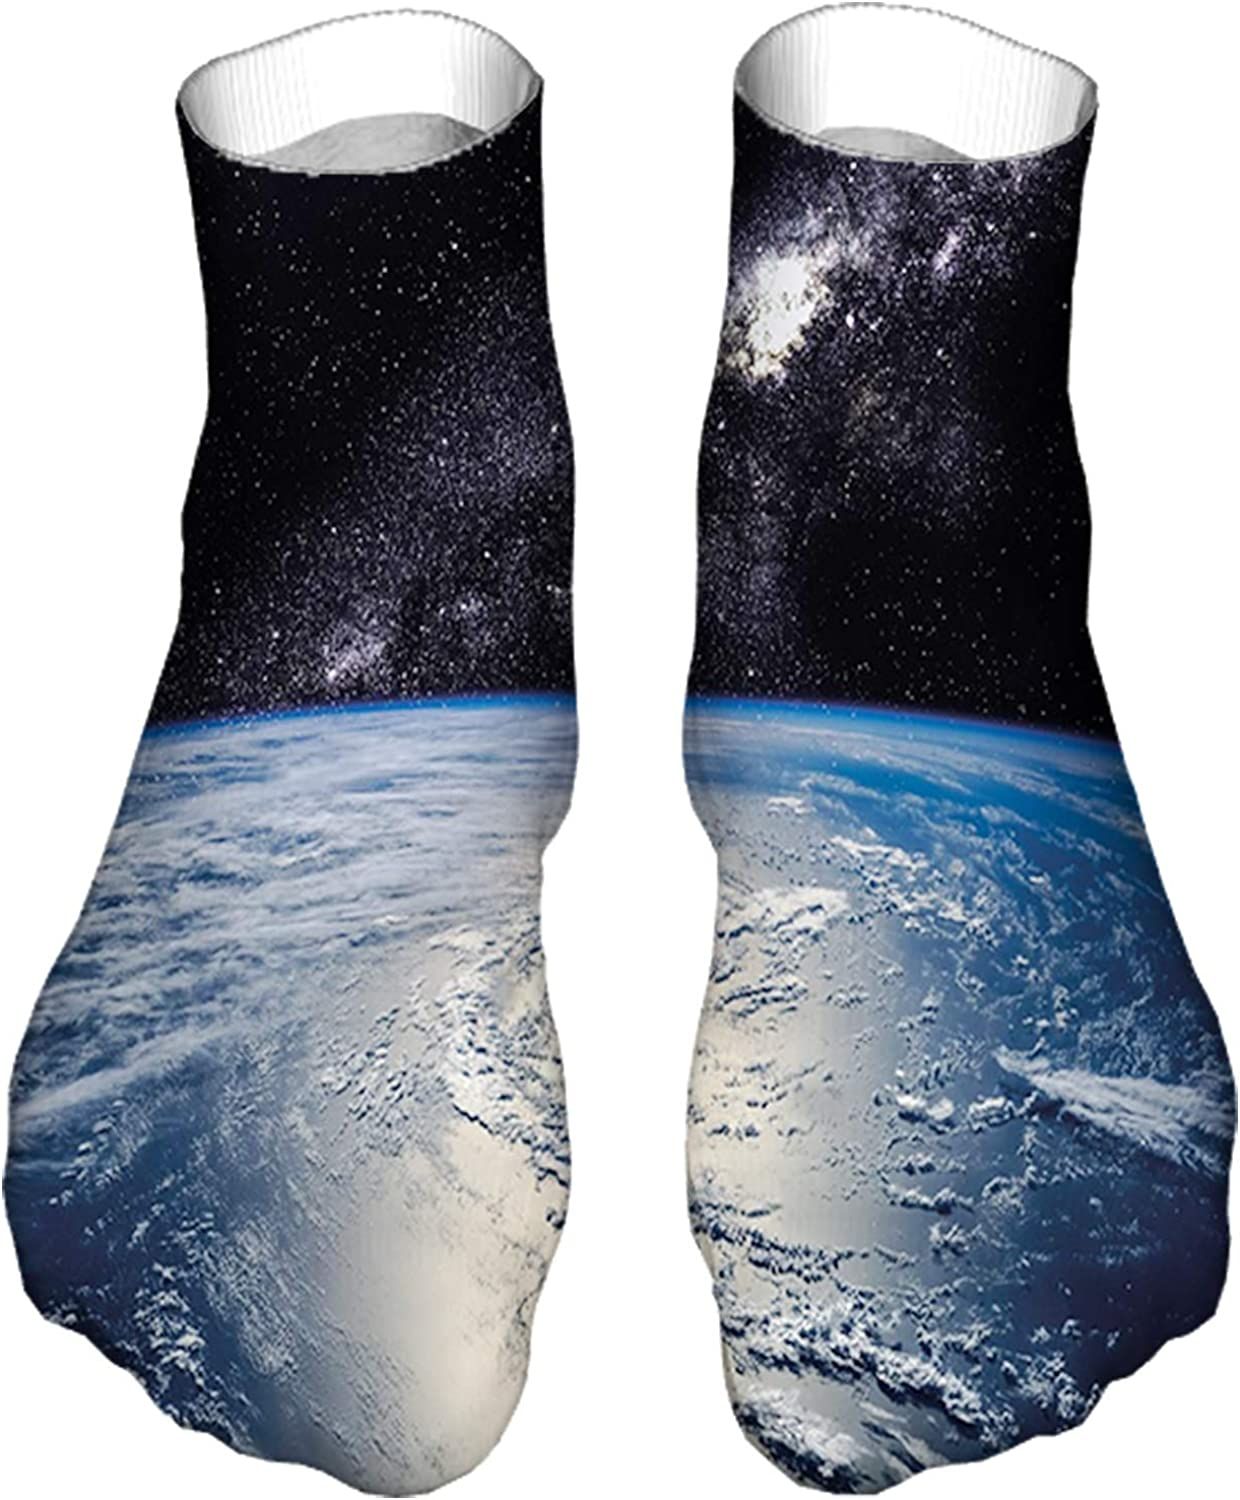 Women's Colorful Patterned Unisex Low Cut/No Show Socks,Majestic Universe Image with Earth and Distant Nebula Cloud